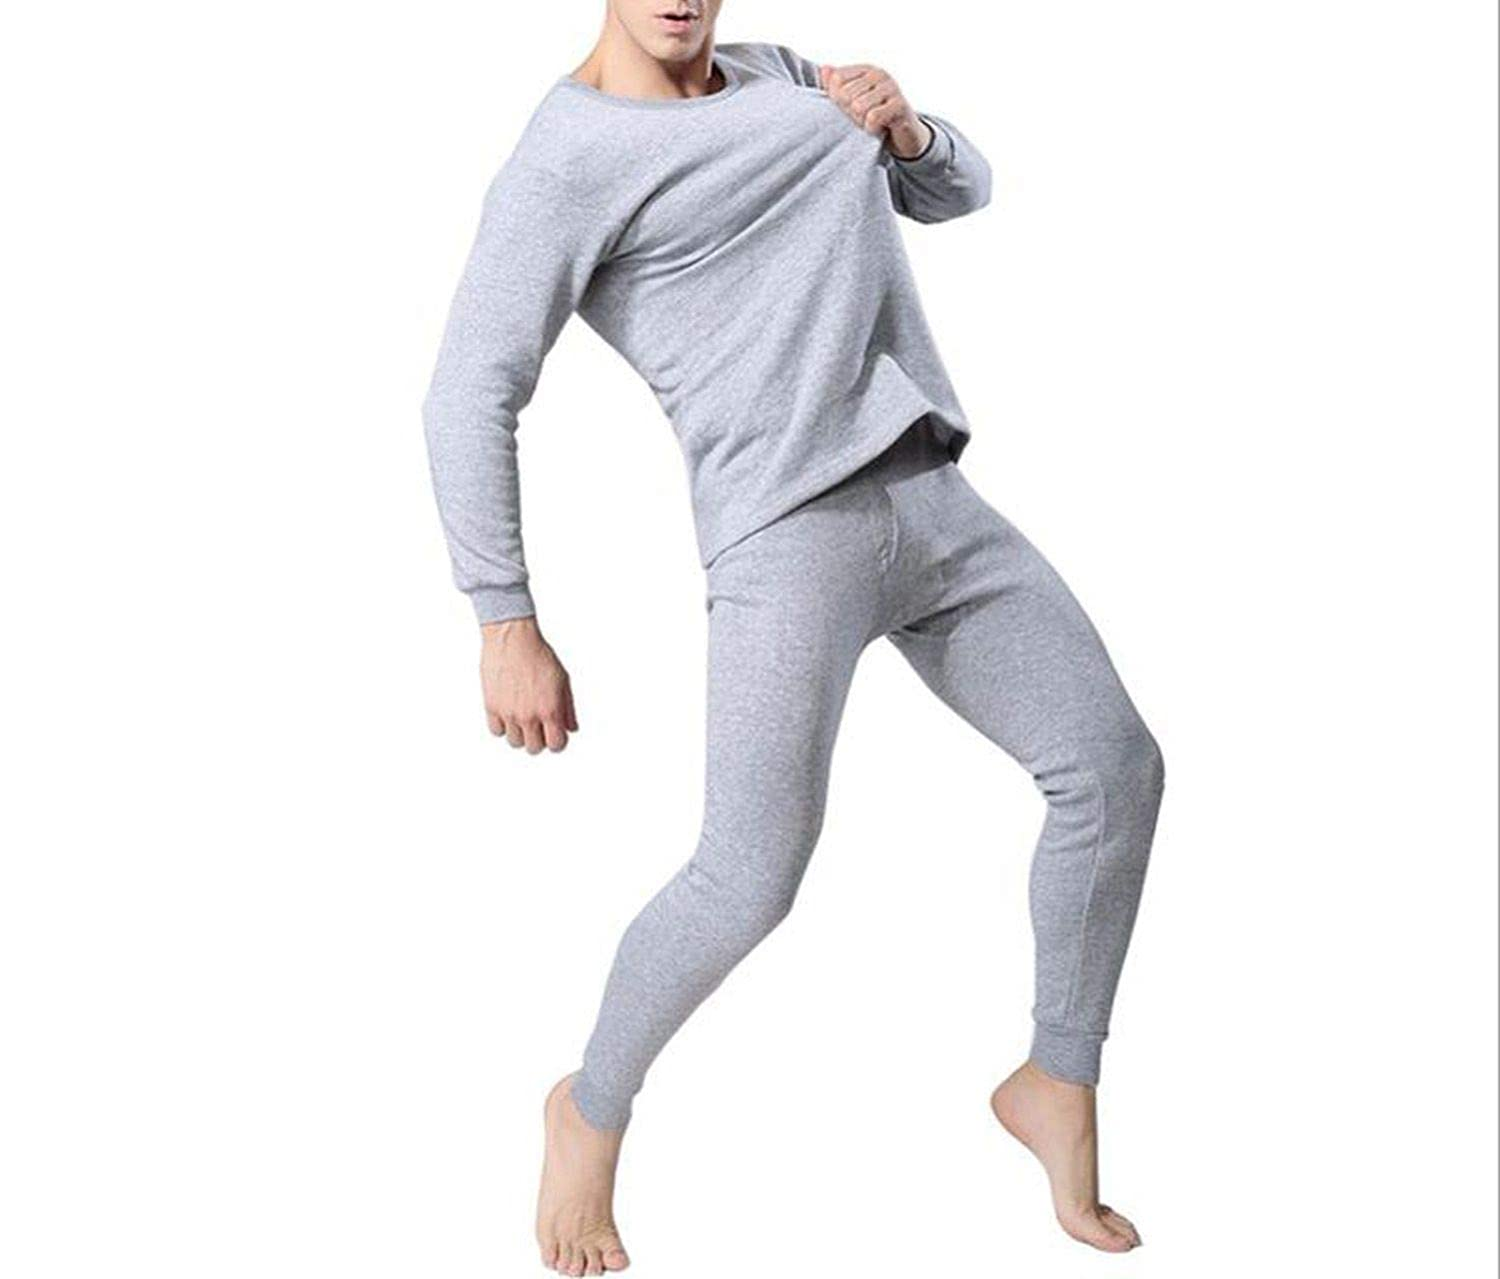 Men's Thermal Underwear Sets Winter Warm Men's Thick Thermal Underwear Long Johns The small cat